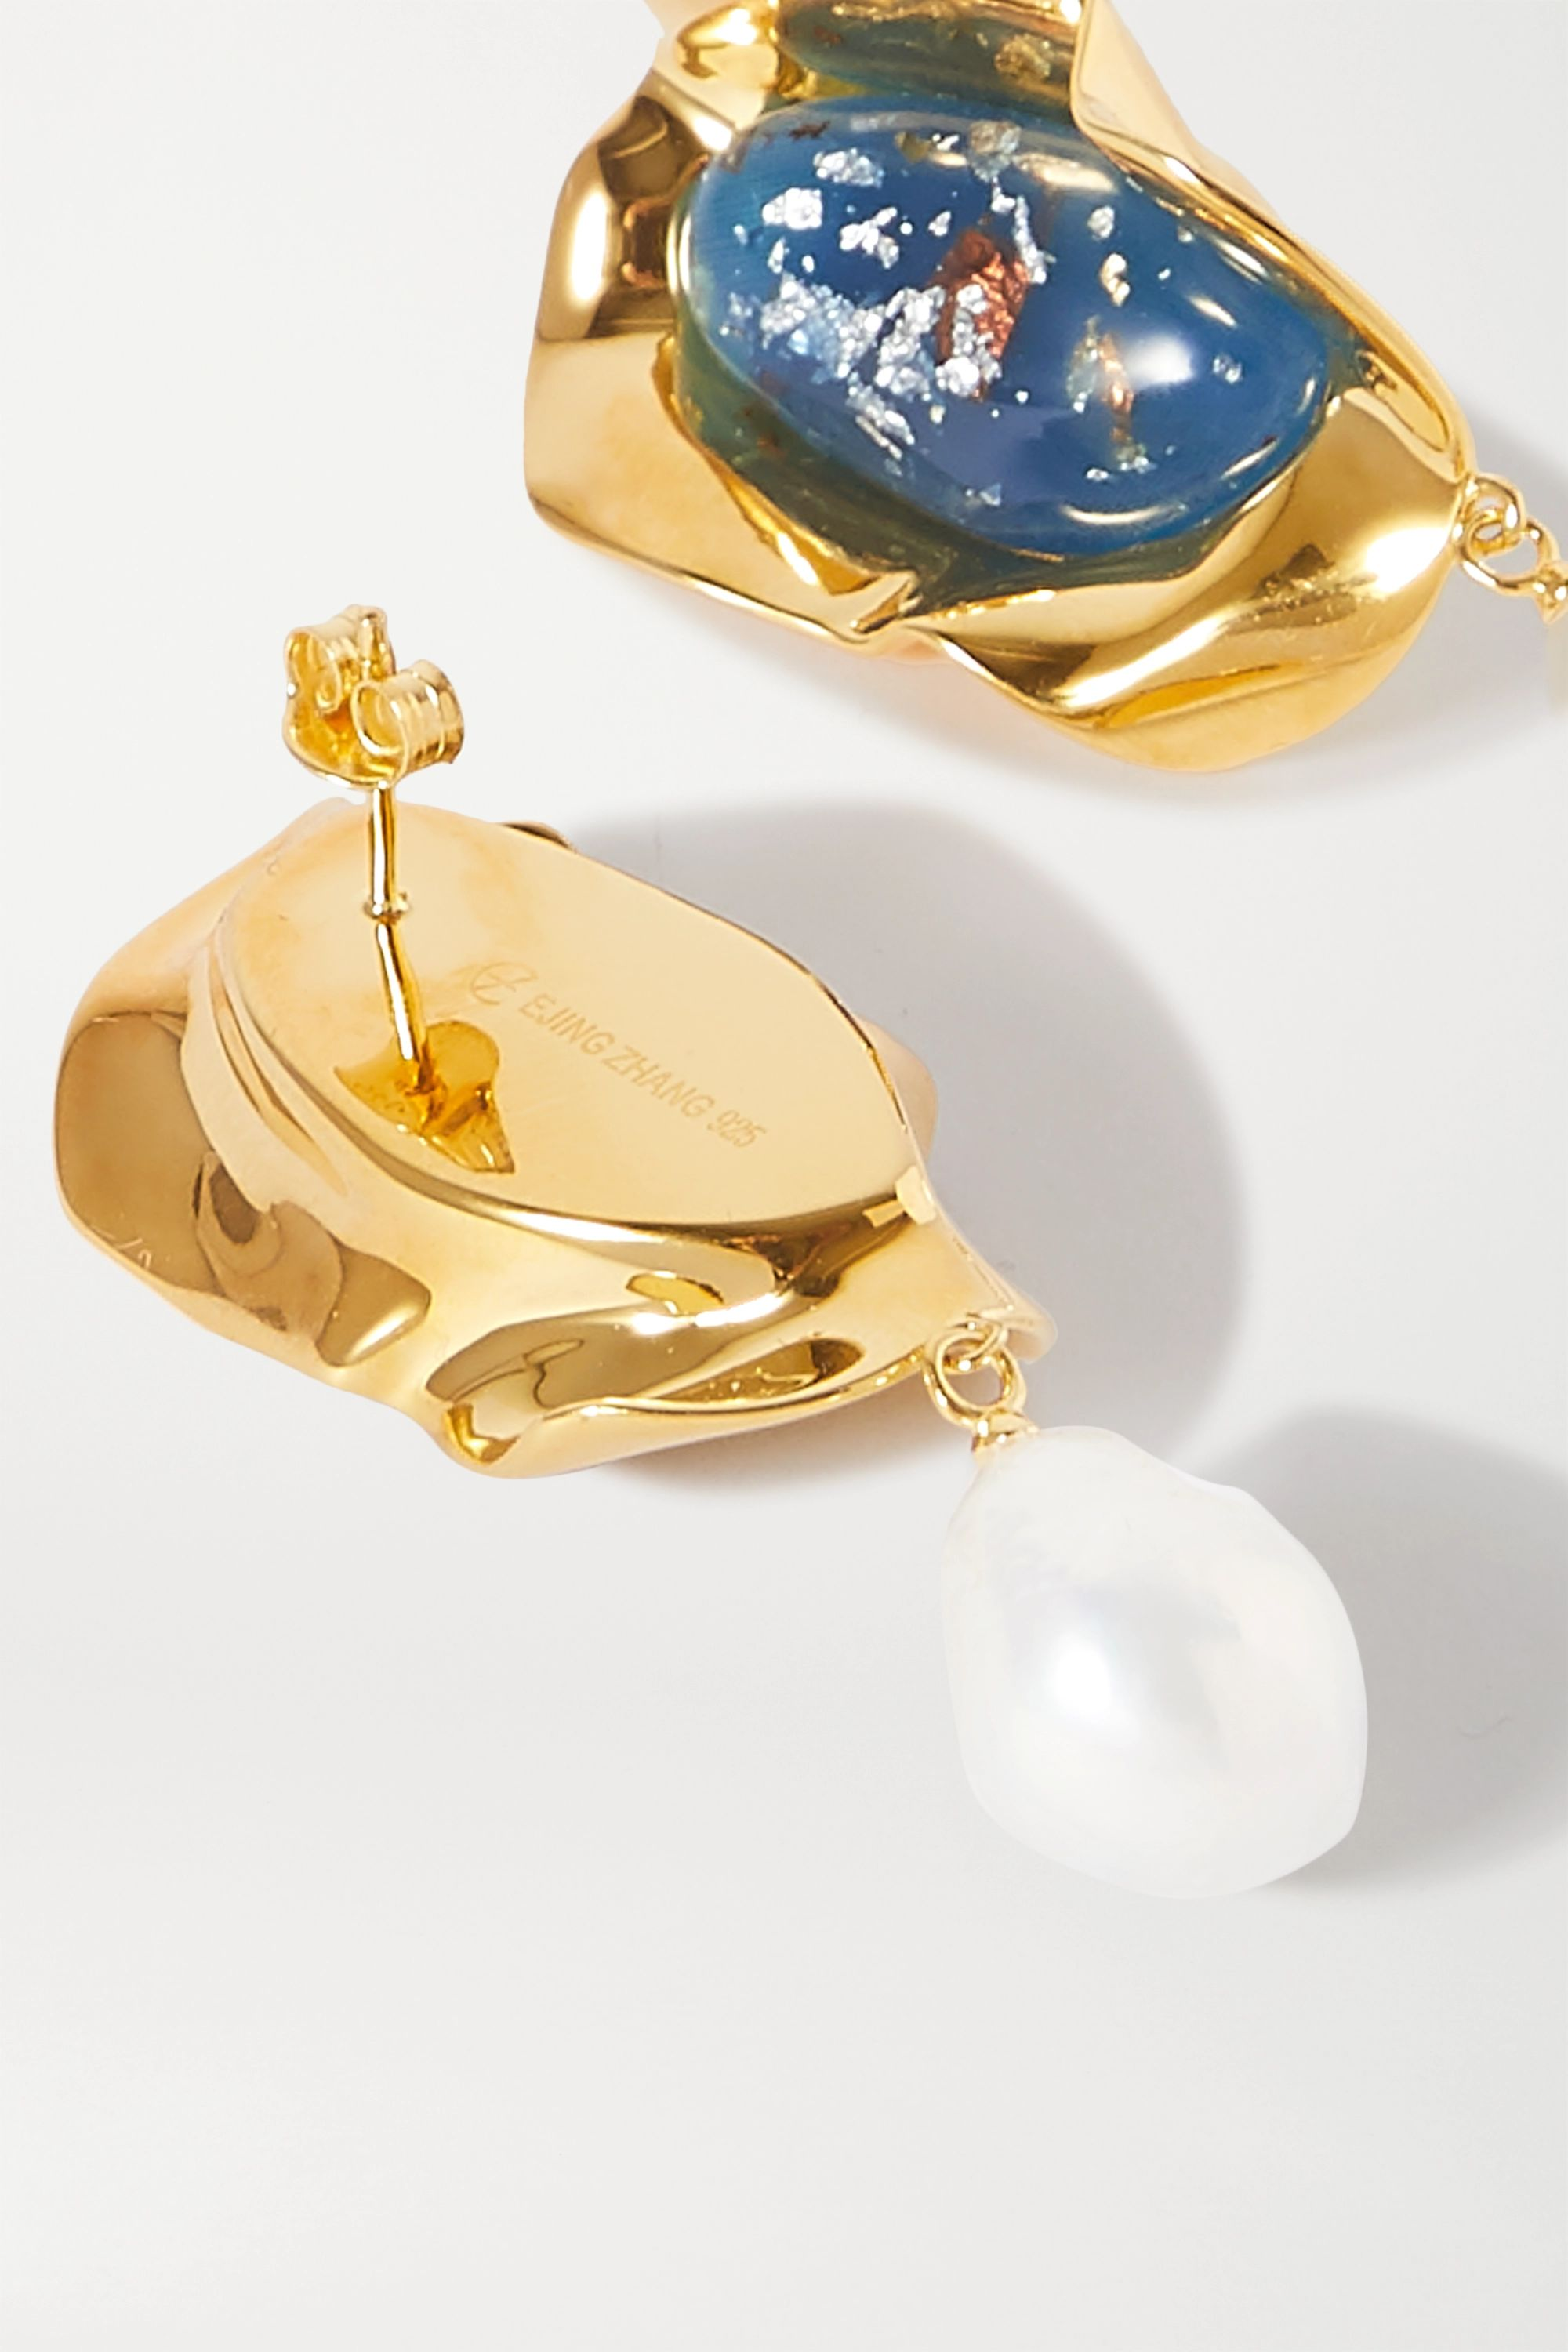 Ejing Zhang Sabra gold-plated, resin and pearl earrings